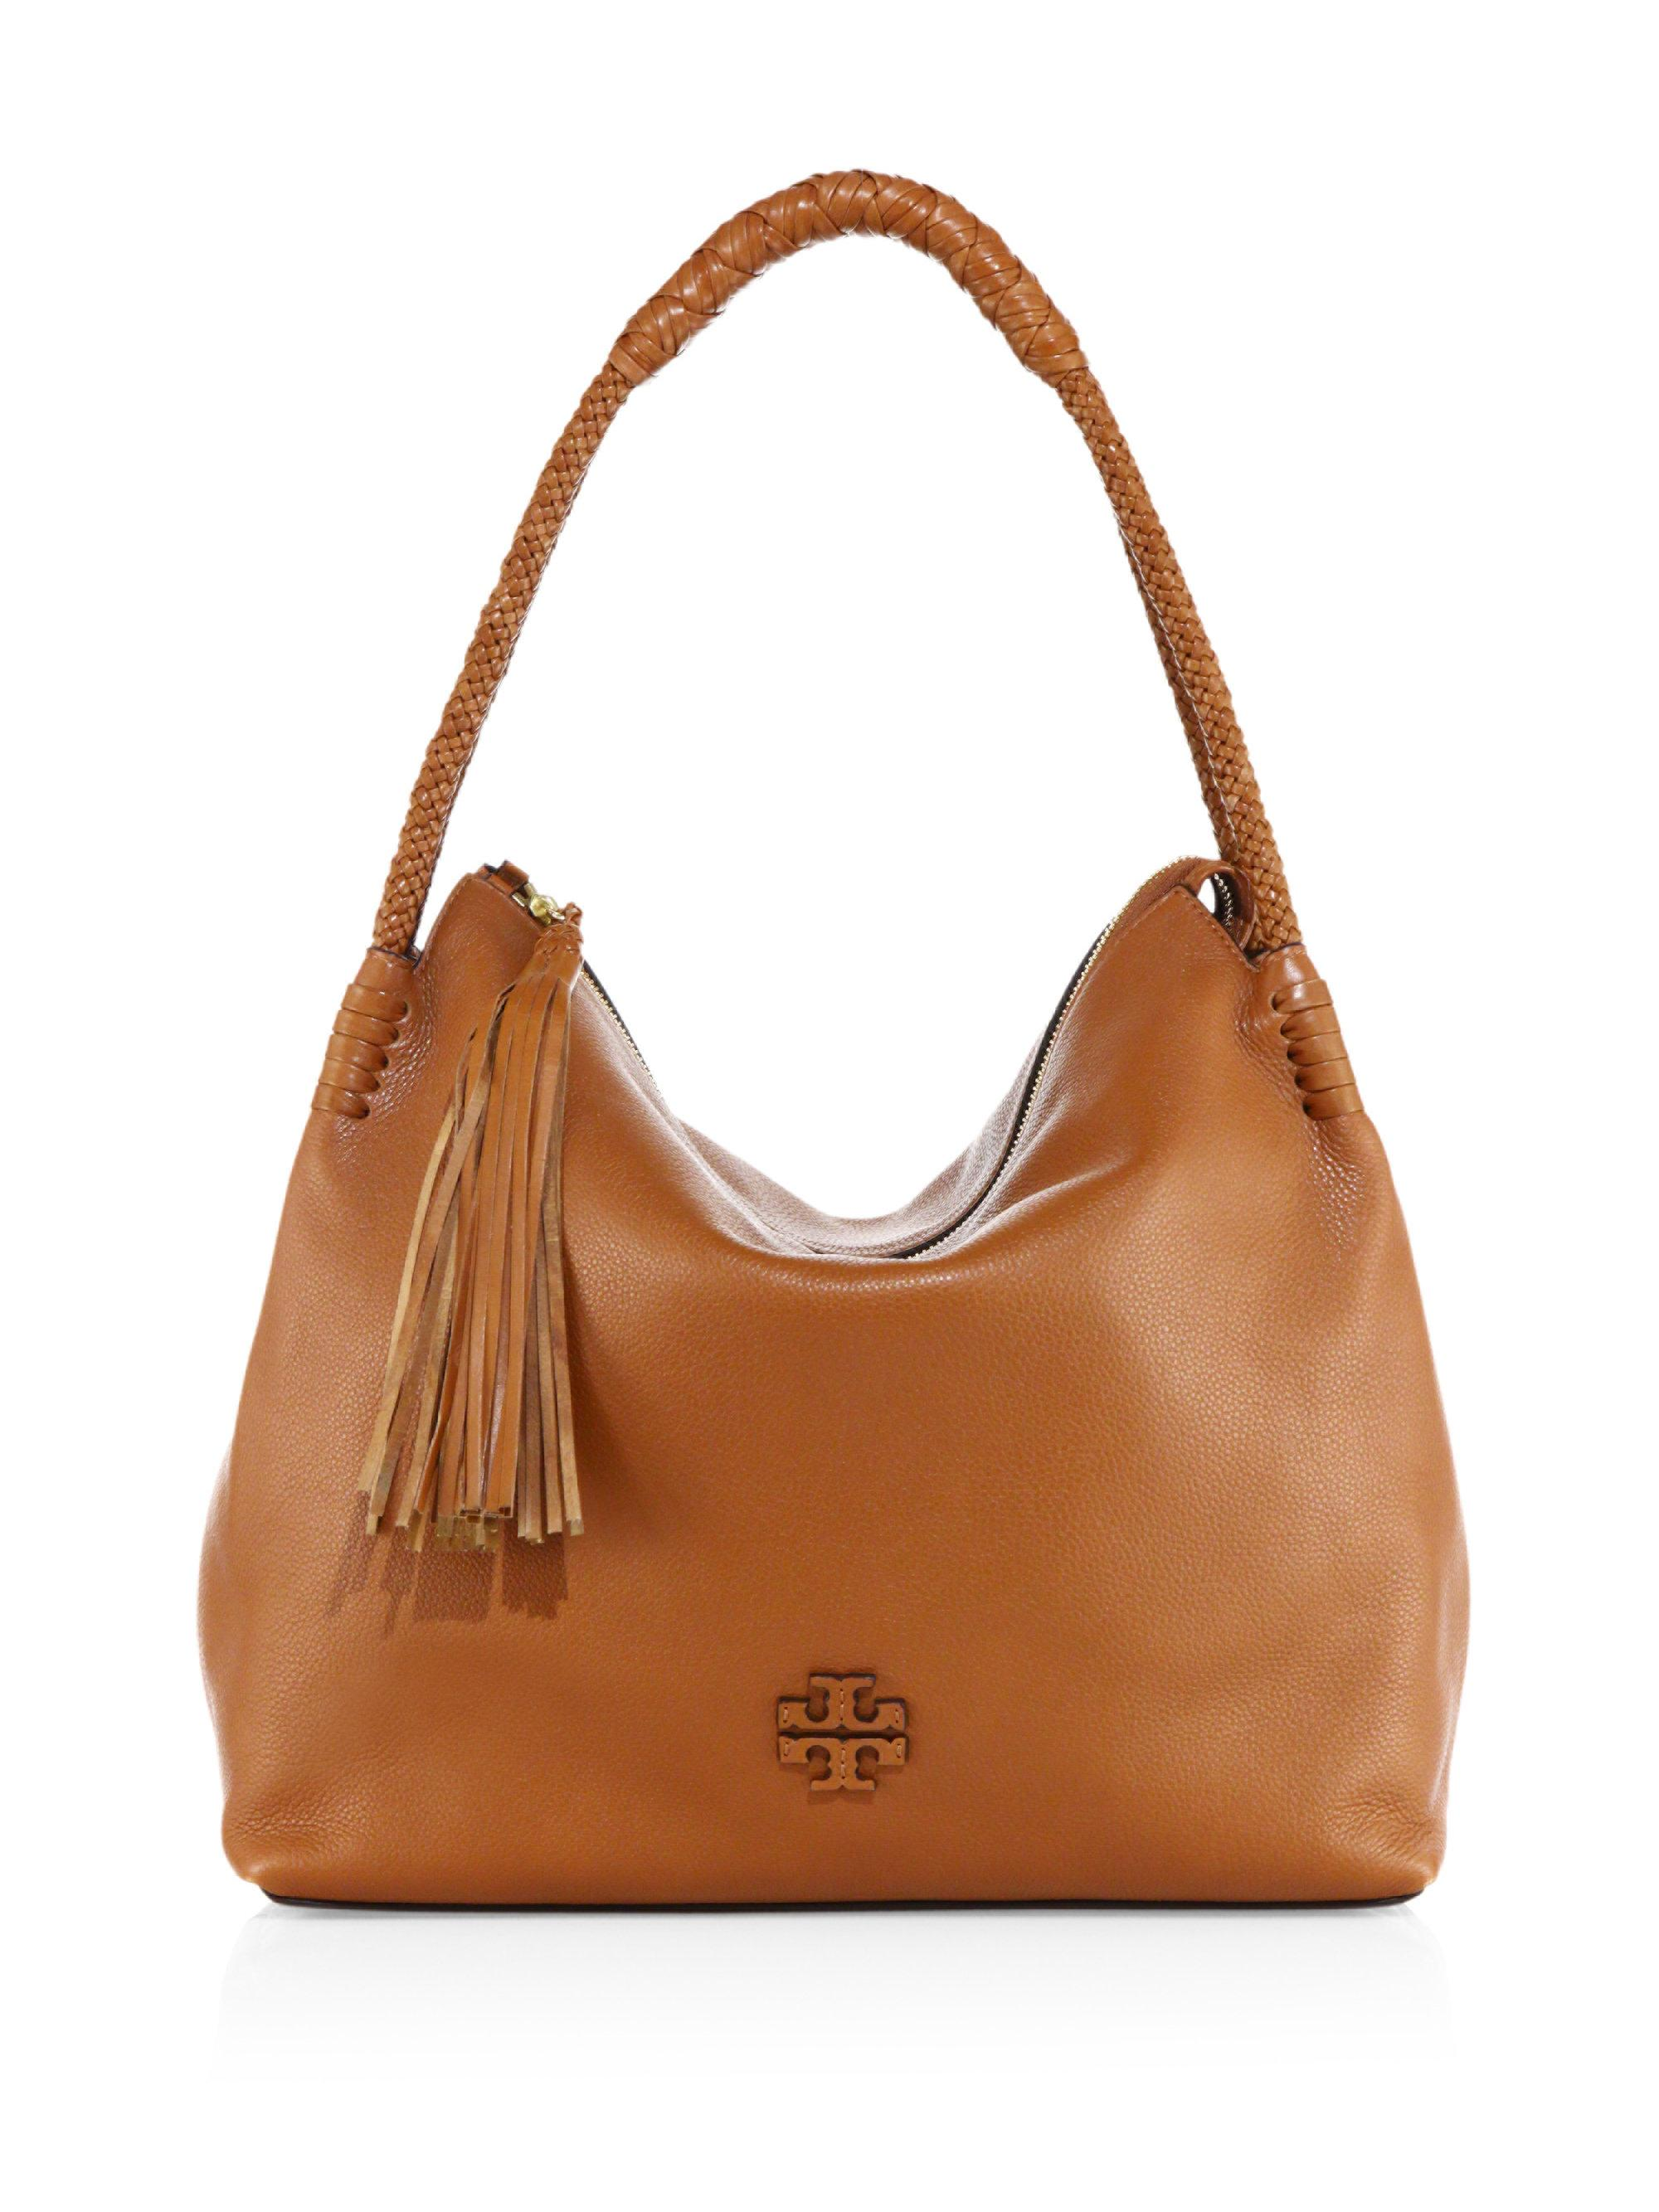 f871cf60668 Tory Burch Taylor Leather Hobo Bag in Brown - Lyst